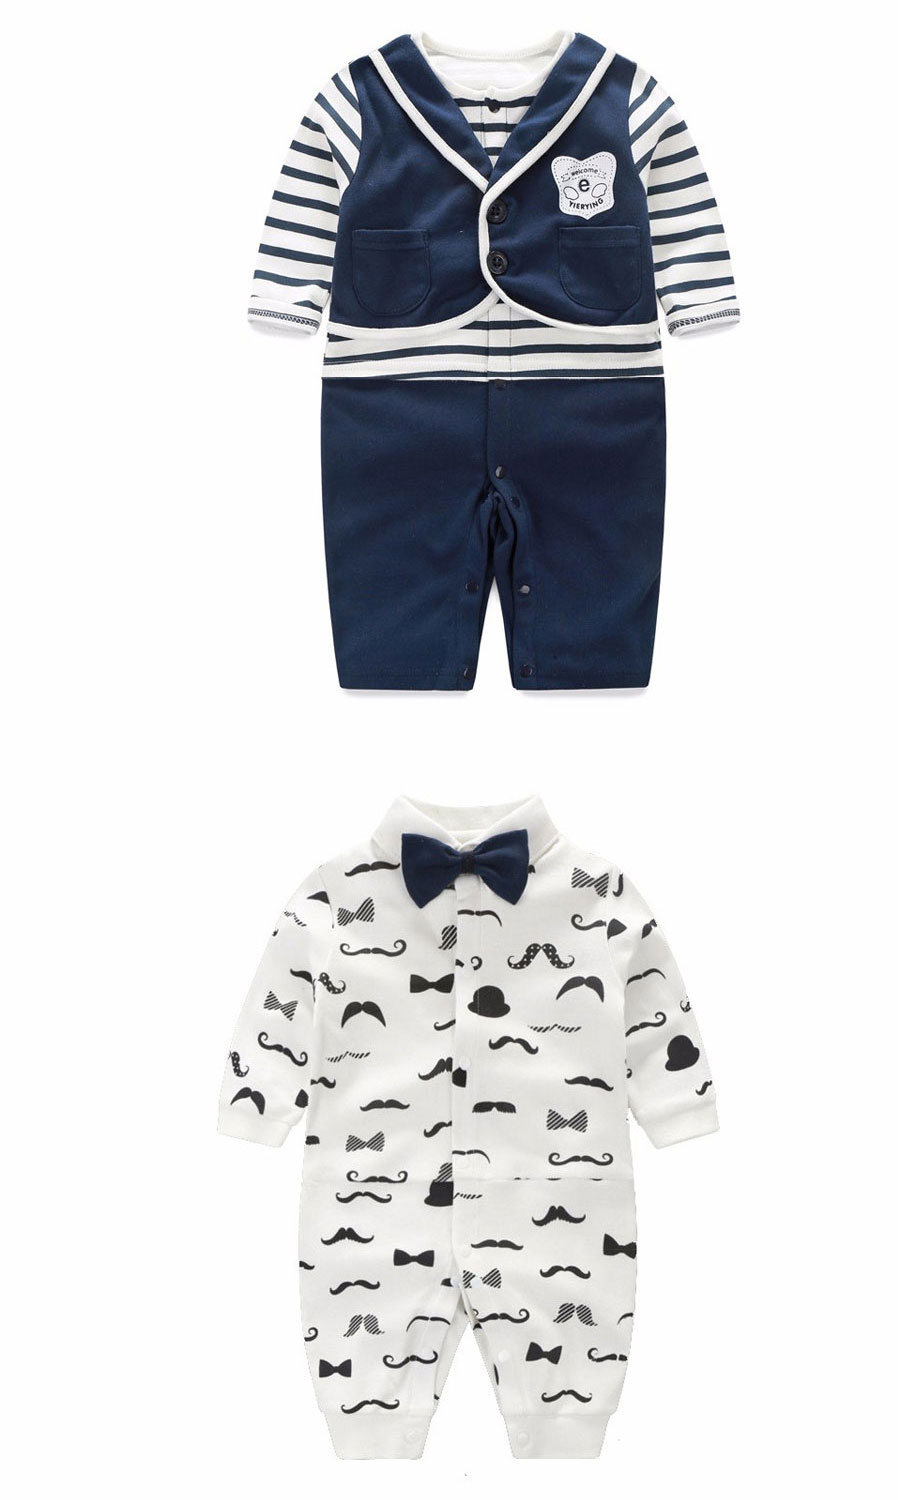 bb50a2f46 IDGIRL Boy Rompers Suit Newborn for 6~9 Months Baby Boy - Gray + White -  Free Shipping - DealExtreme